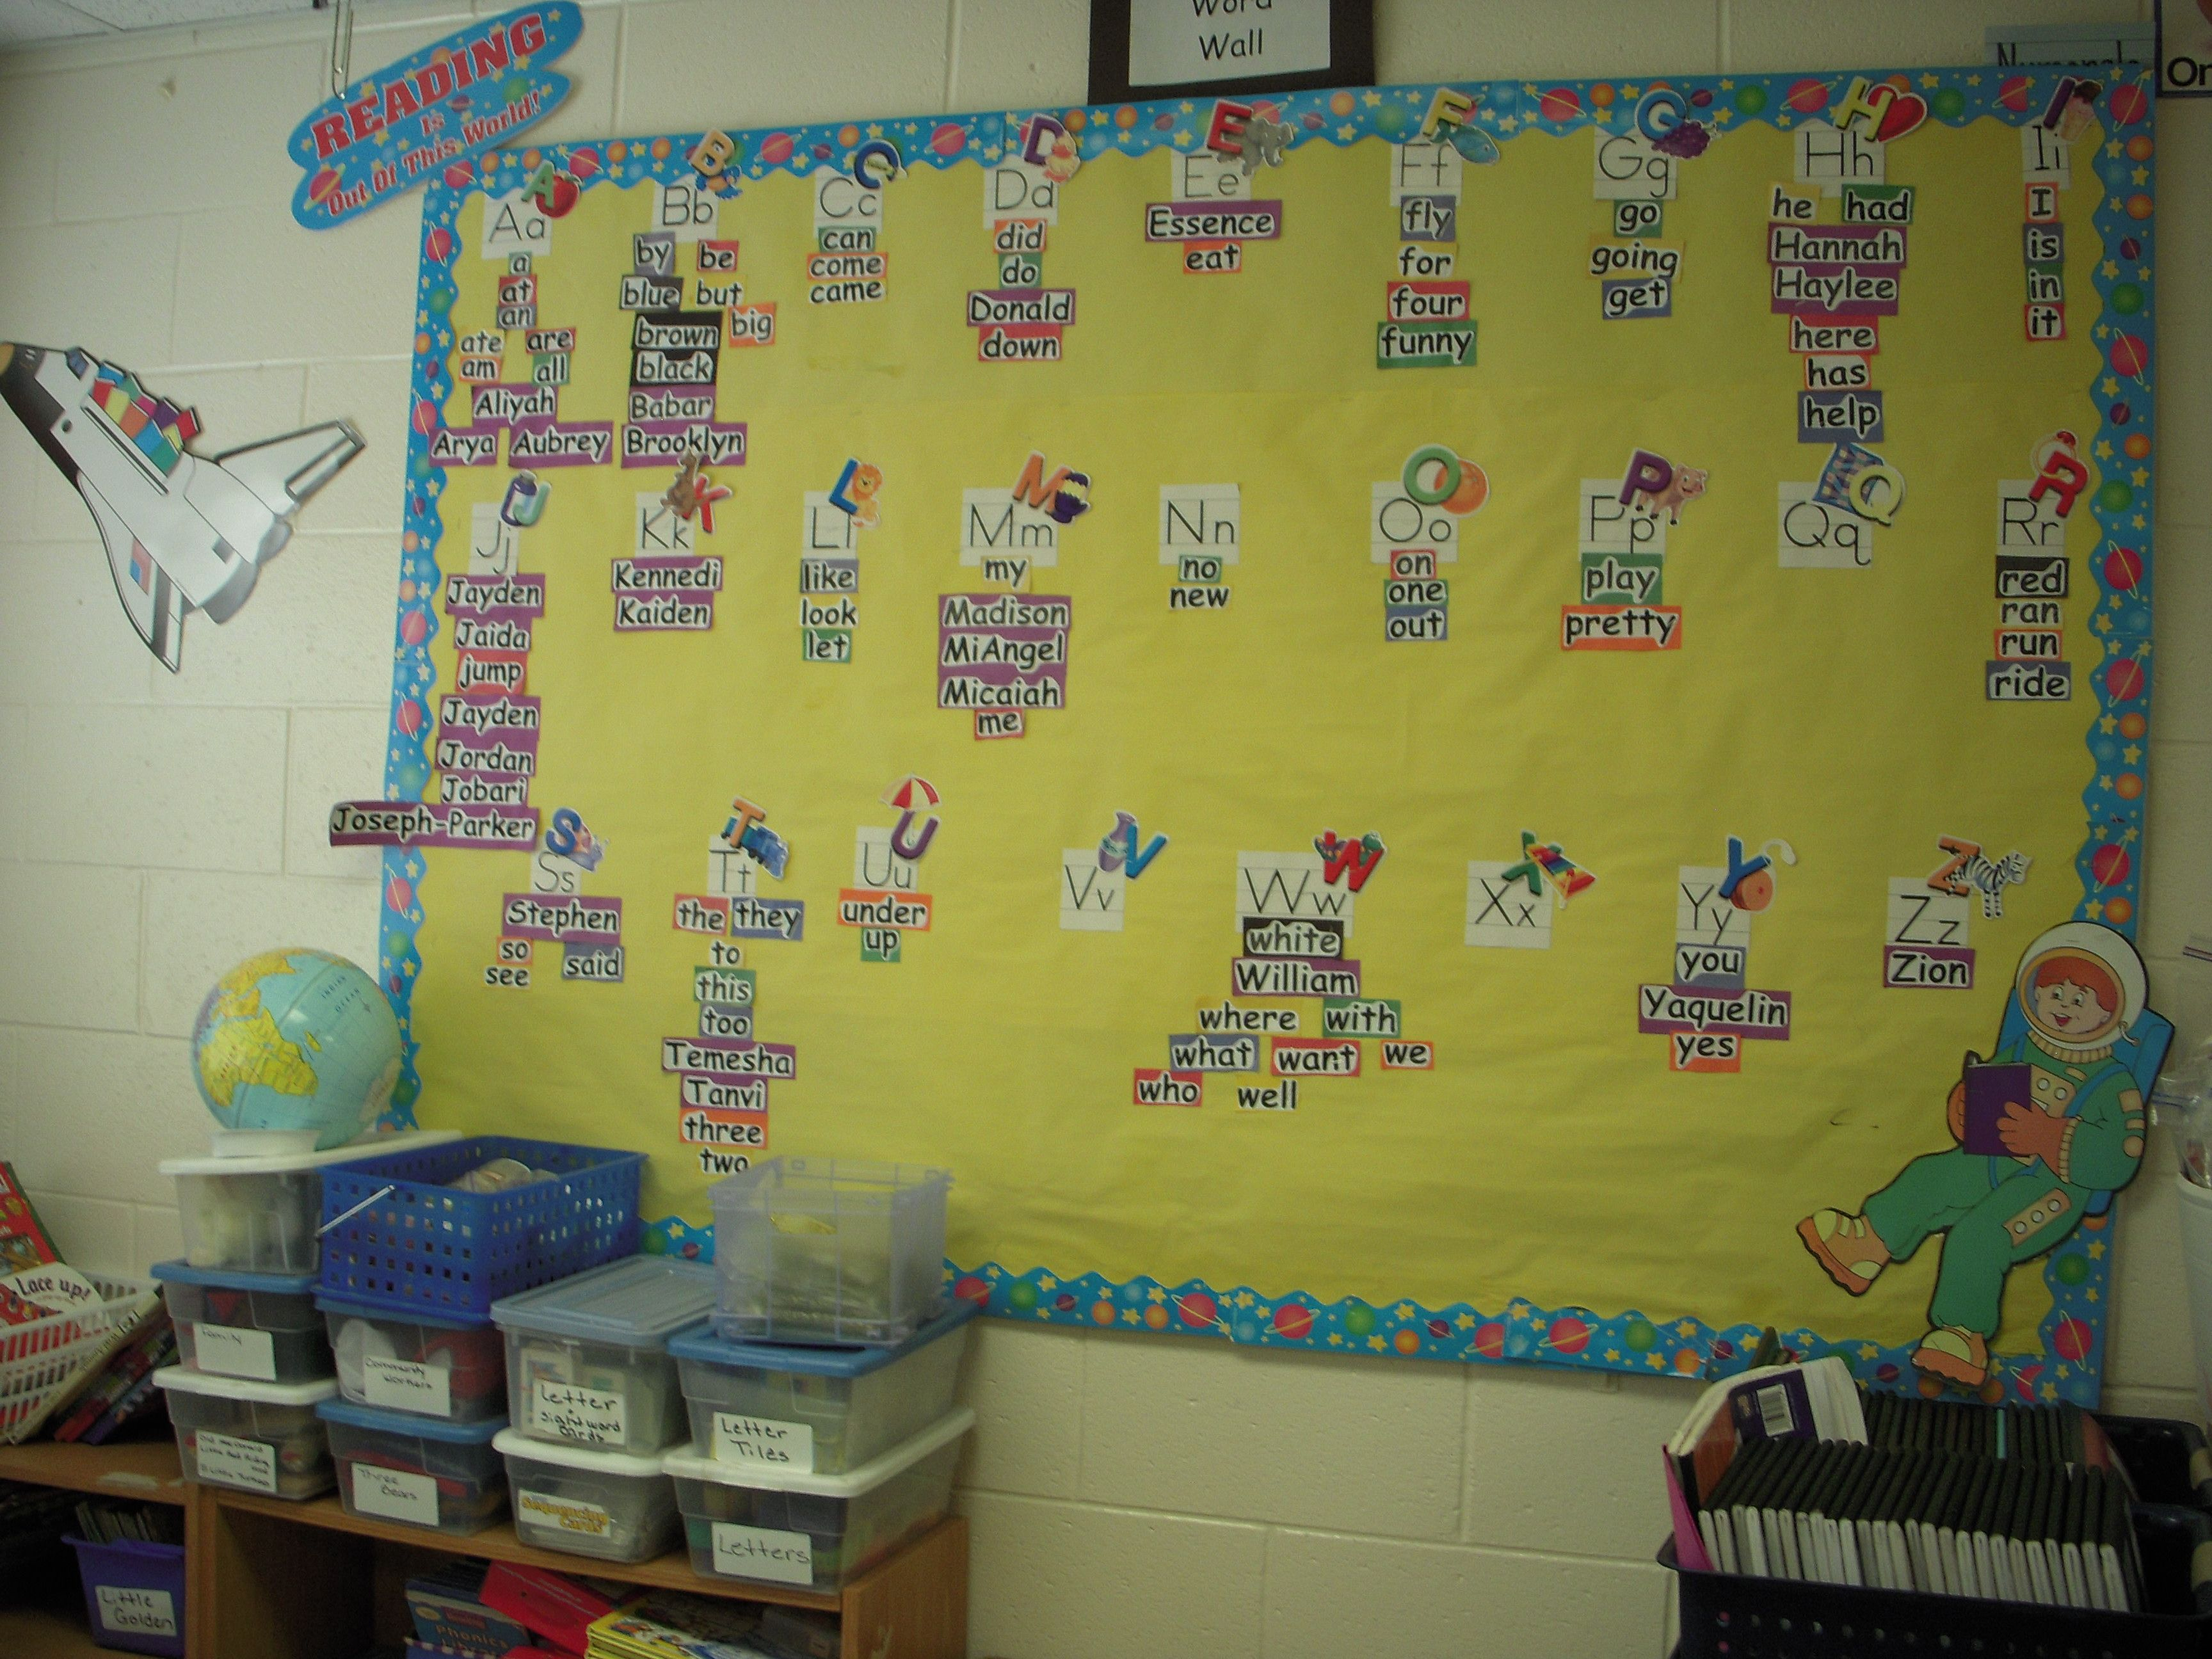 Awesome How To Ate Classroom Walls Illustration - Home Design Ideas ...